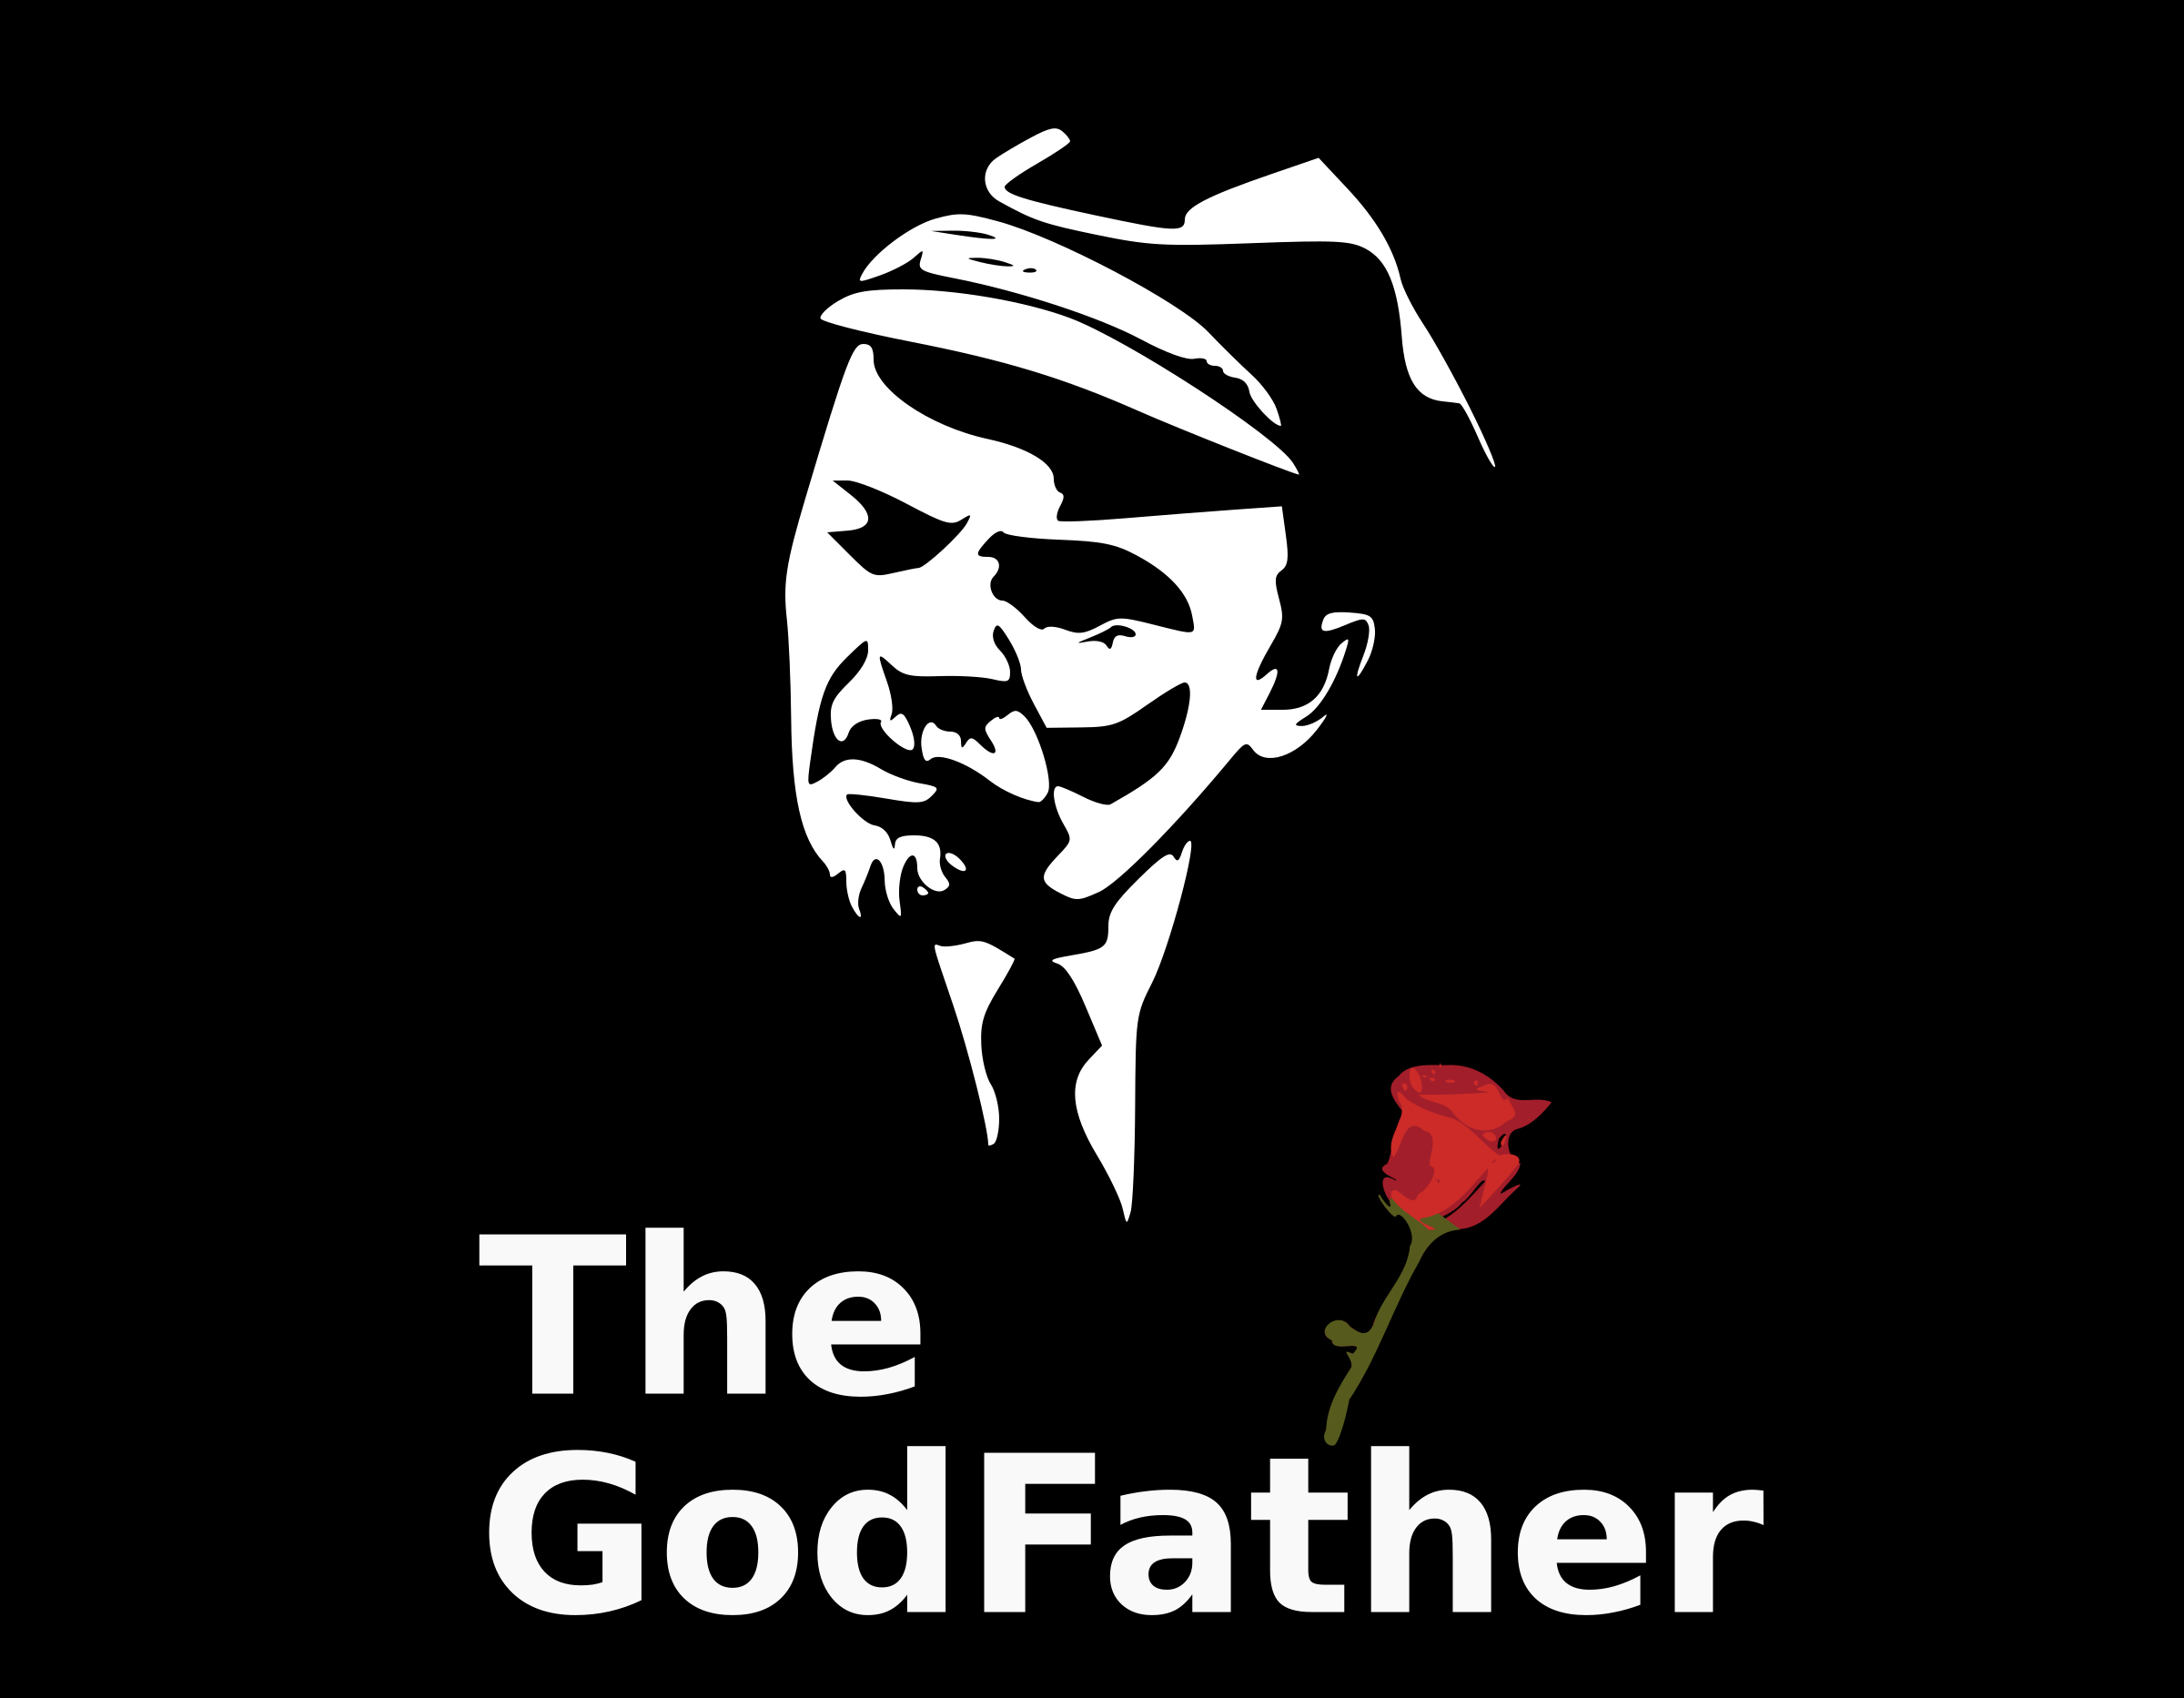 The God Father by suthir